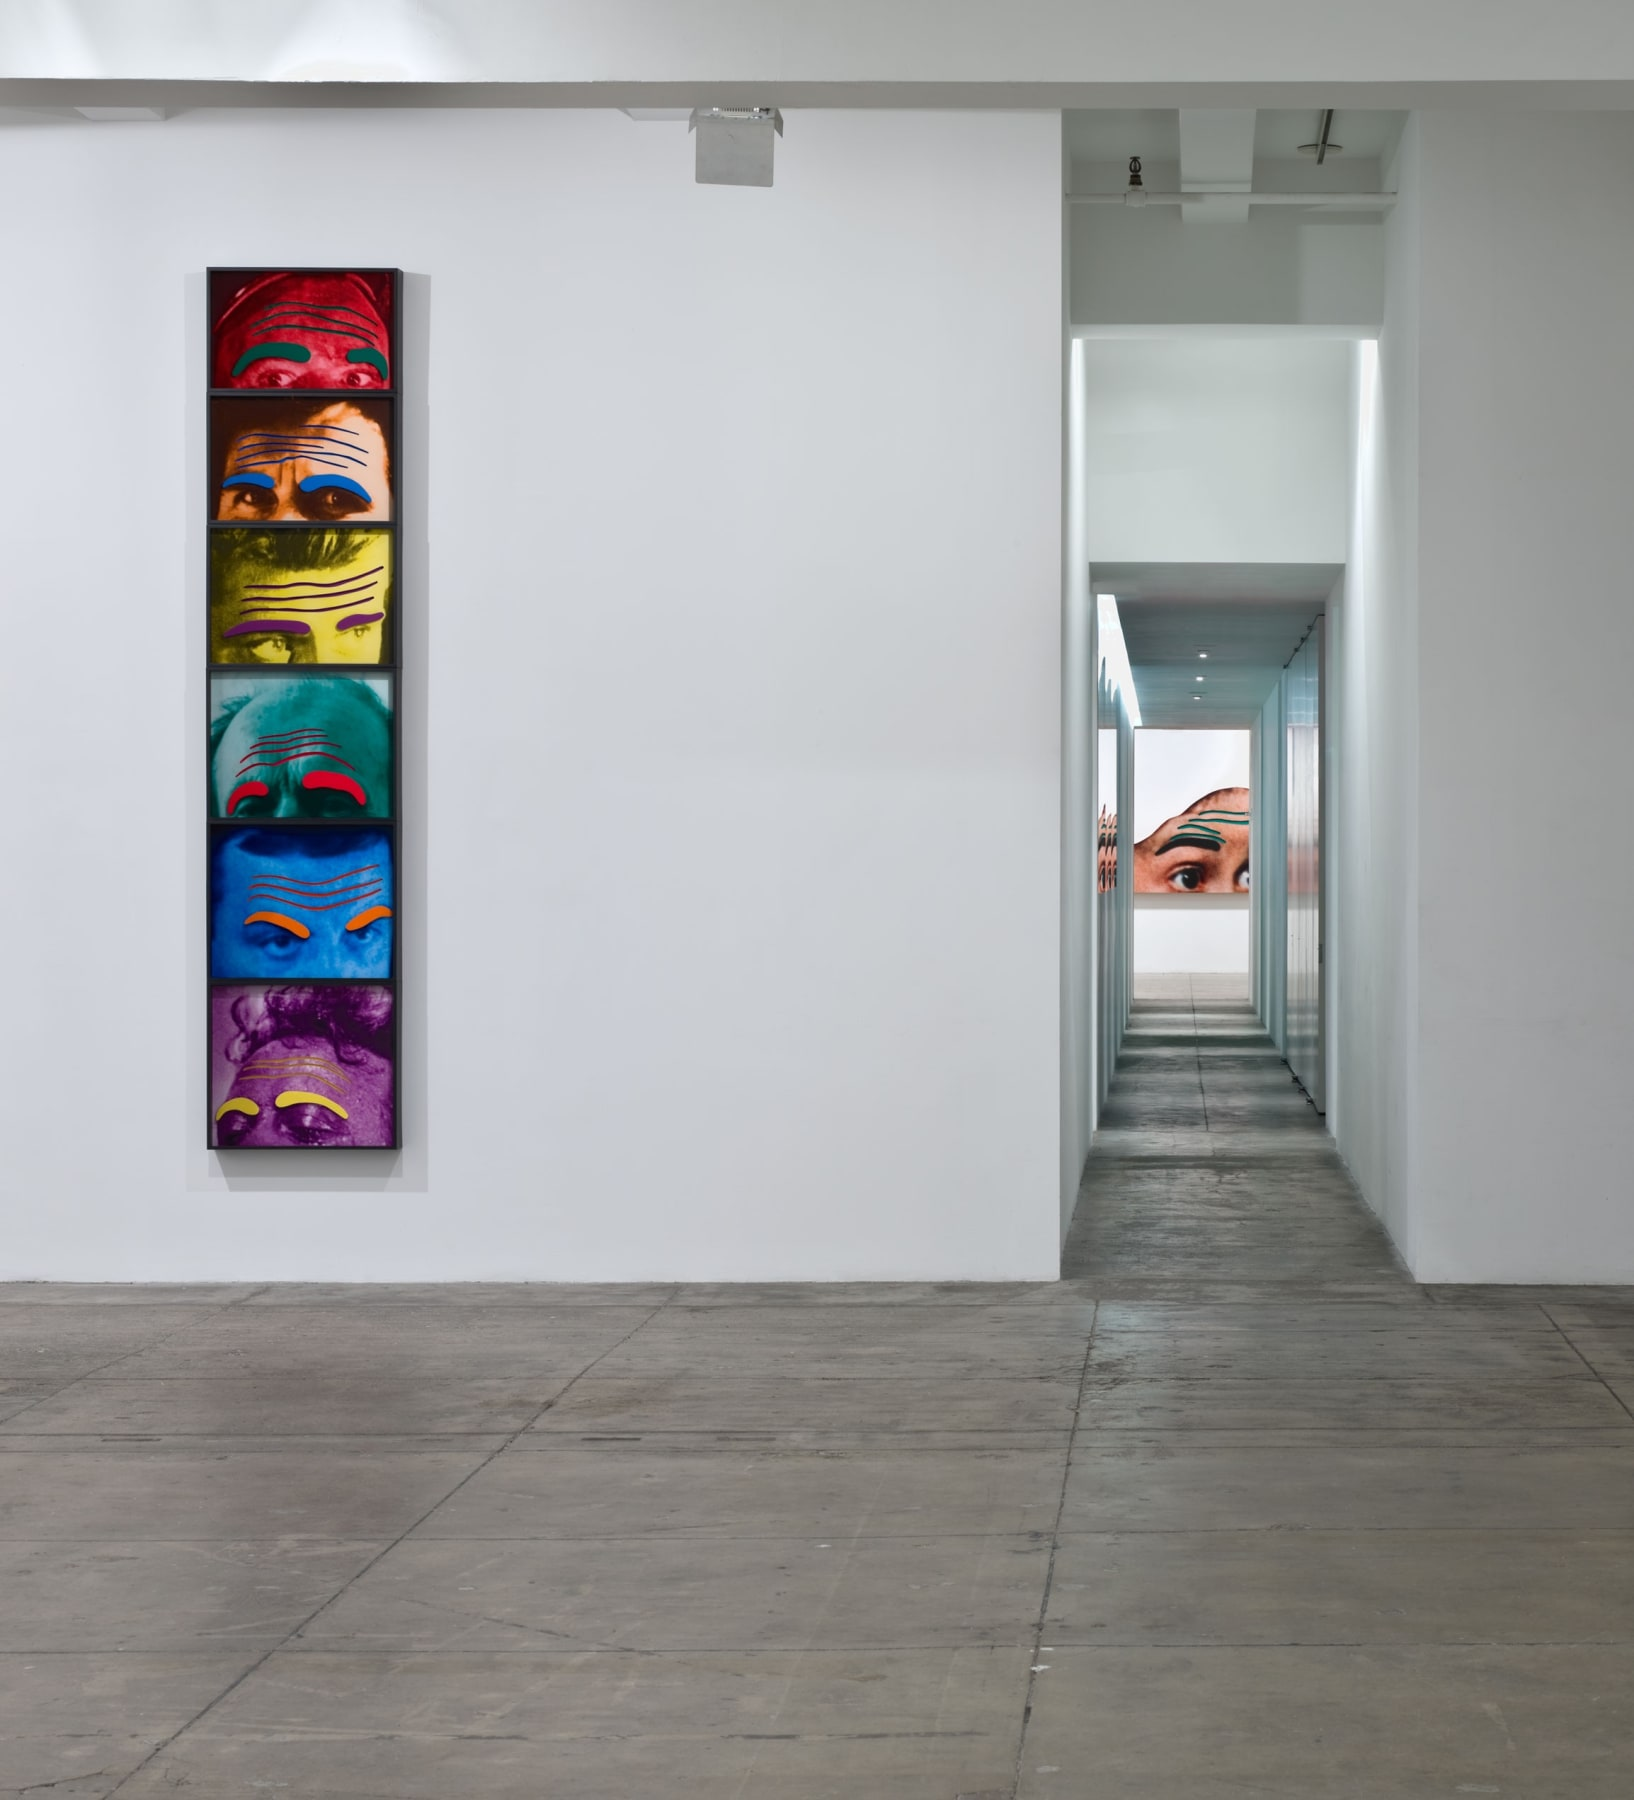 To the left of a long hallway, six framed images of foreheads in different colors are stacked on top of each other.